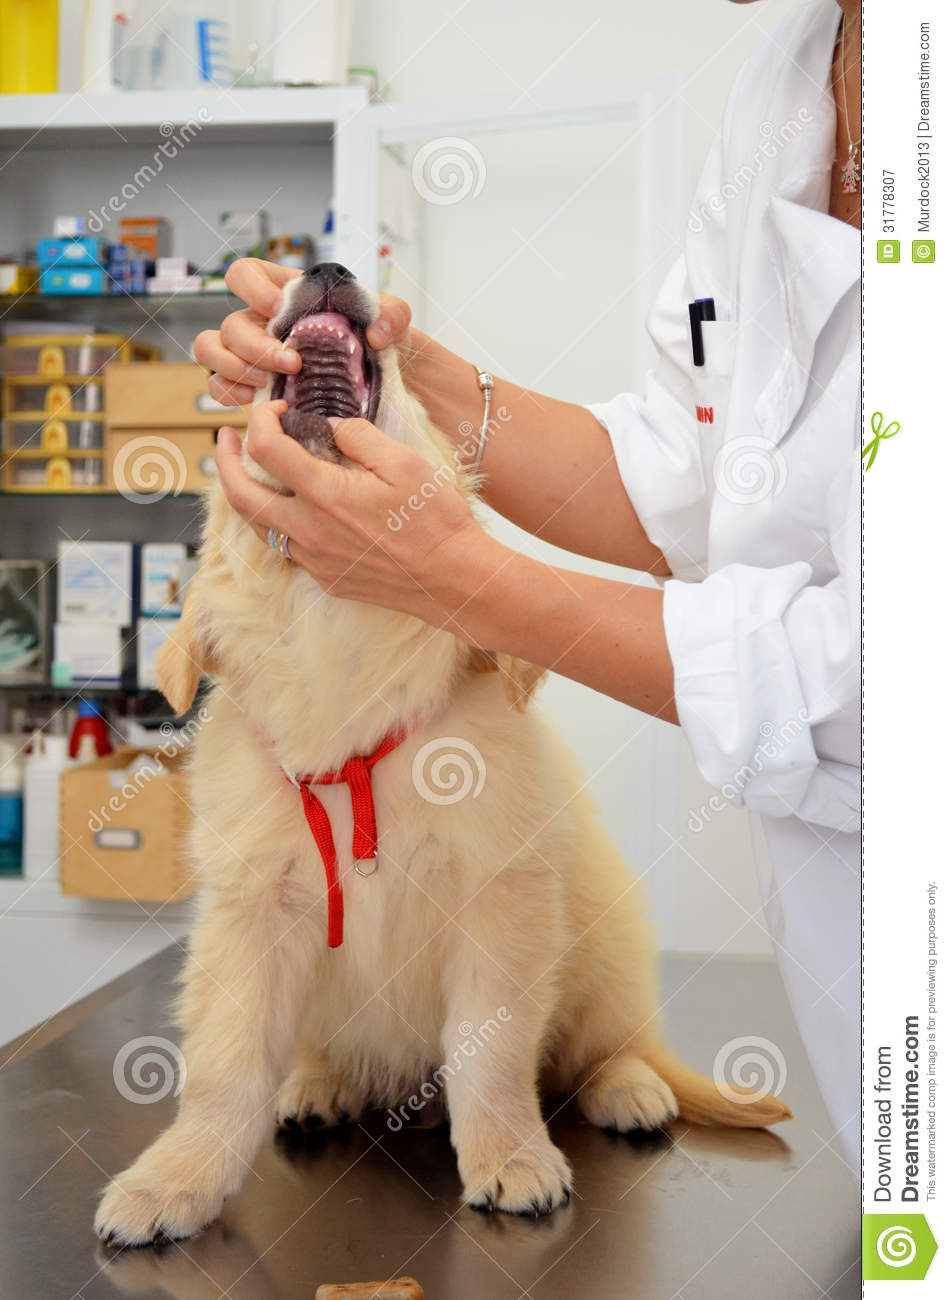 Vet Checking Puppy Dog Royalty Free Stock Photography